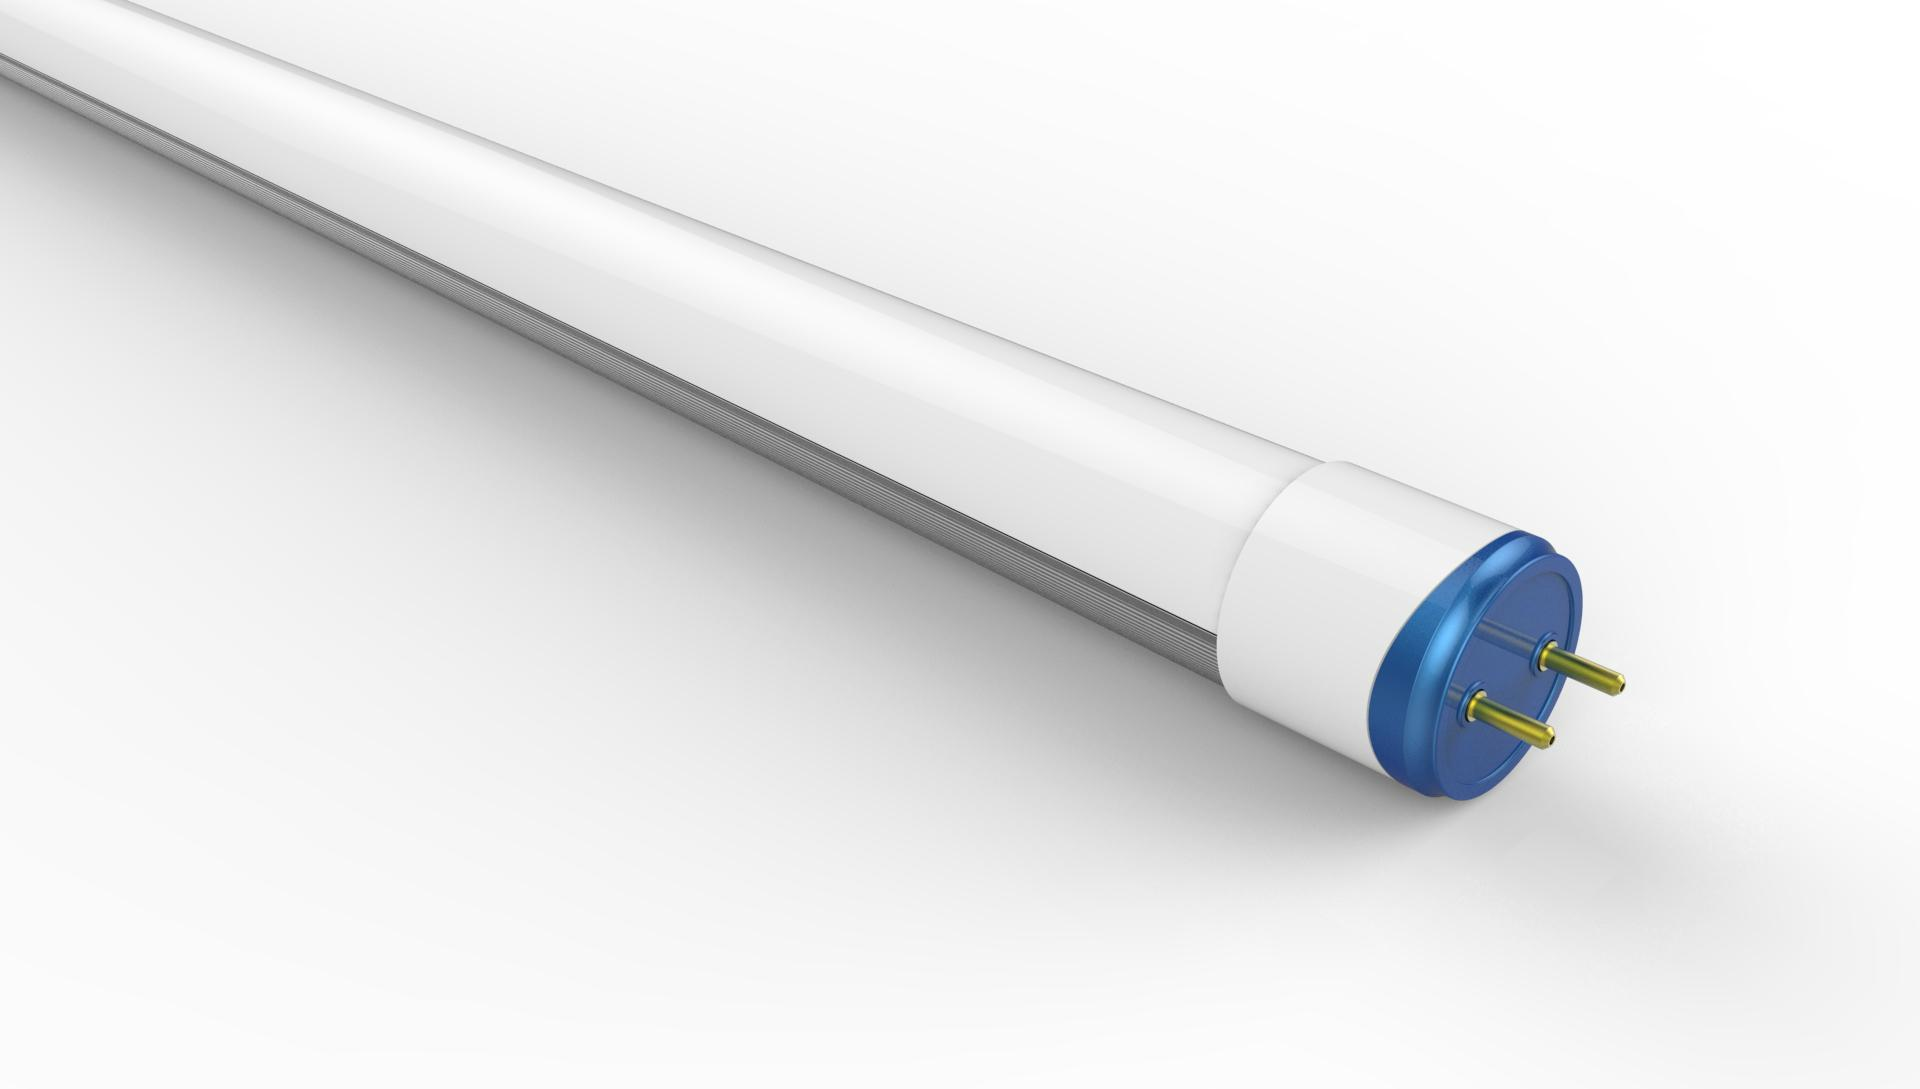 LED t8 tube Ultra Bright 160lm/w with TUV certificate 16